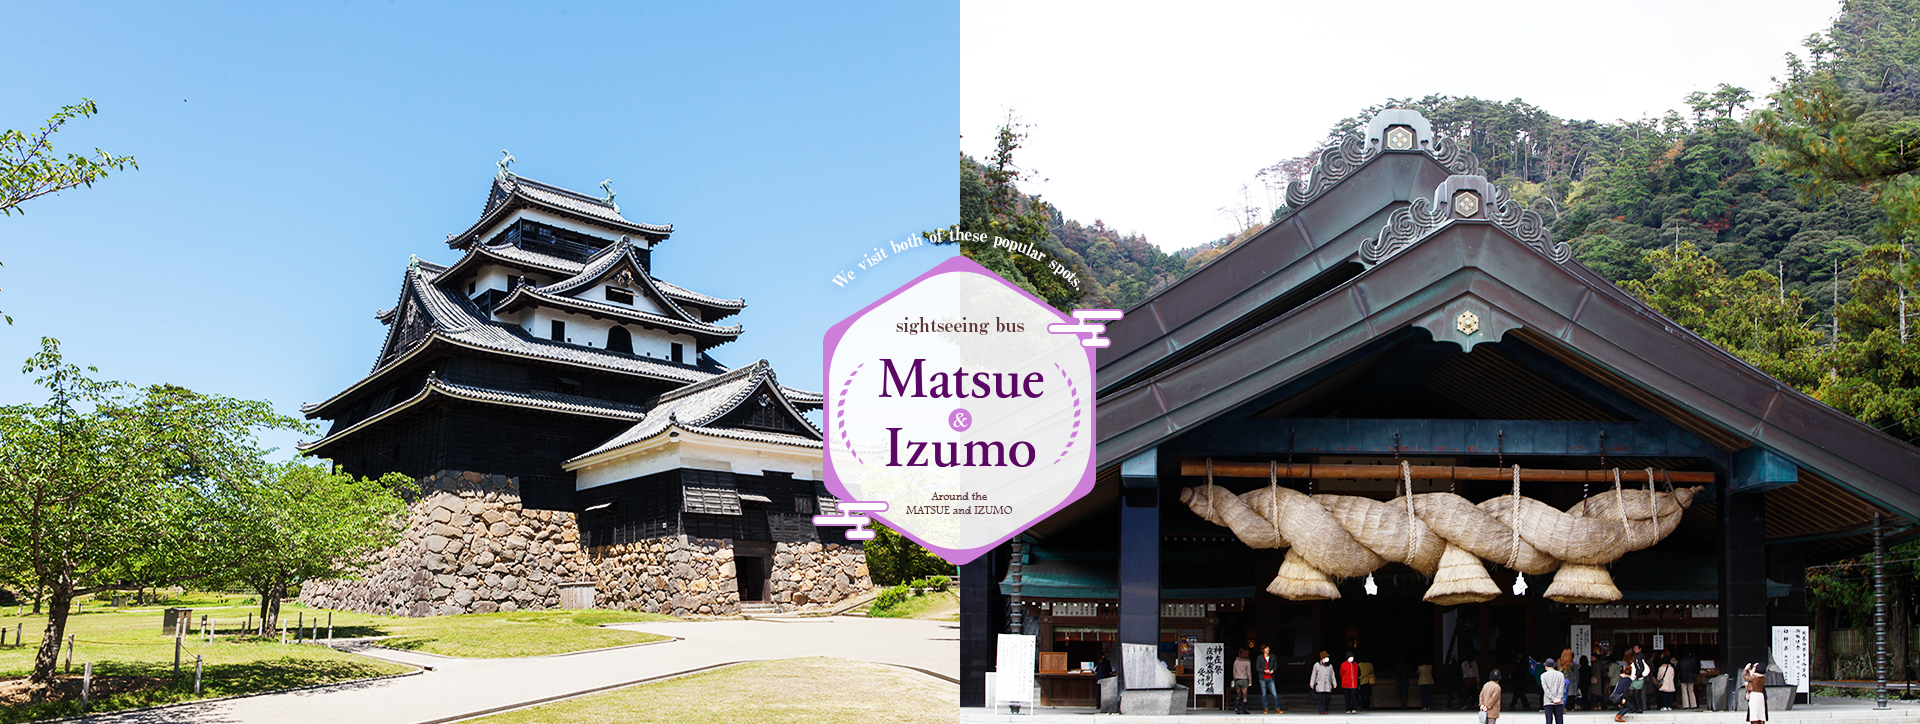 Sightseeing bus Matsue & Izumo who goes round both popular spots by bus